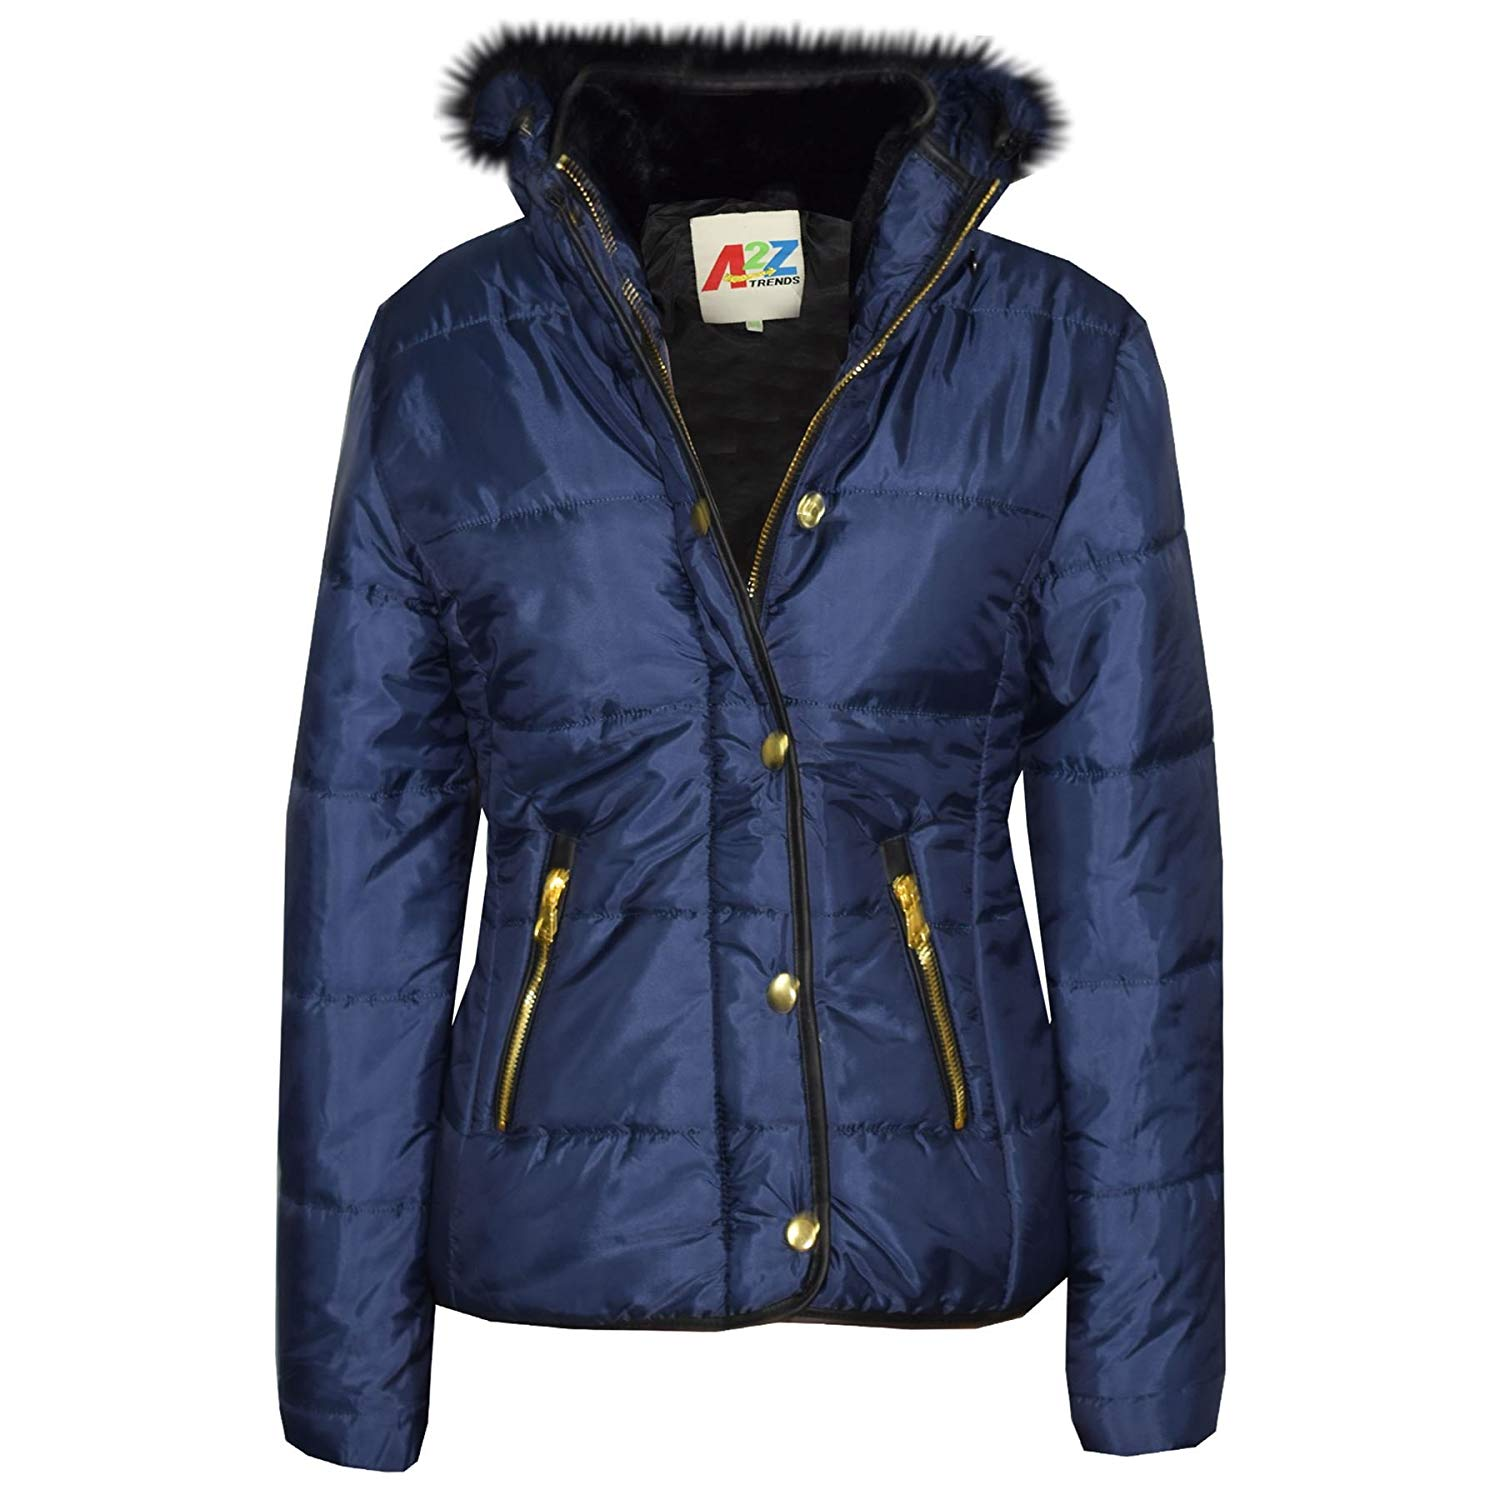 Cheap Navy Padded Jacket Ladies Find Navy Padded Jacket Ladies